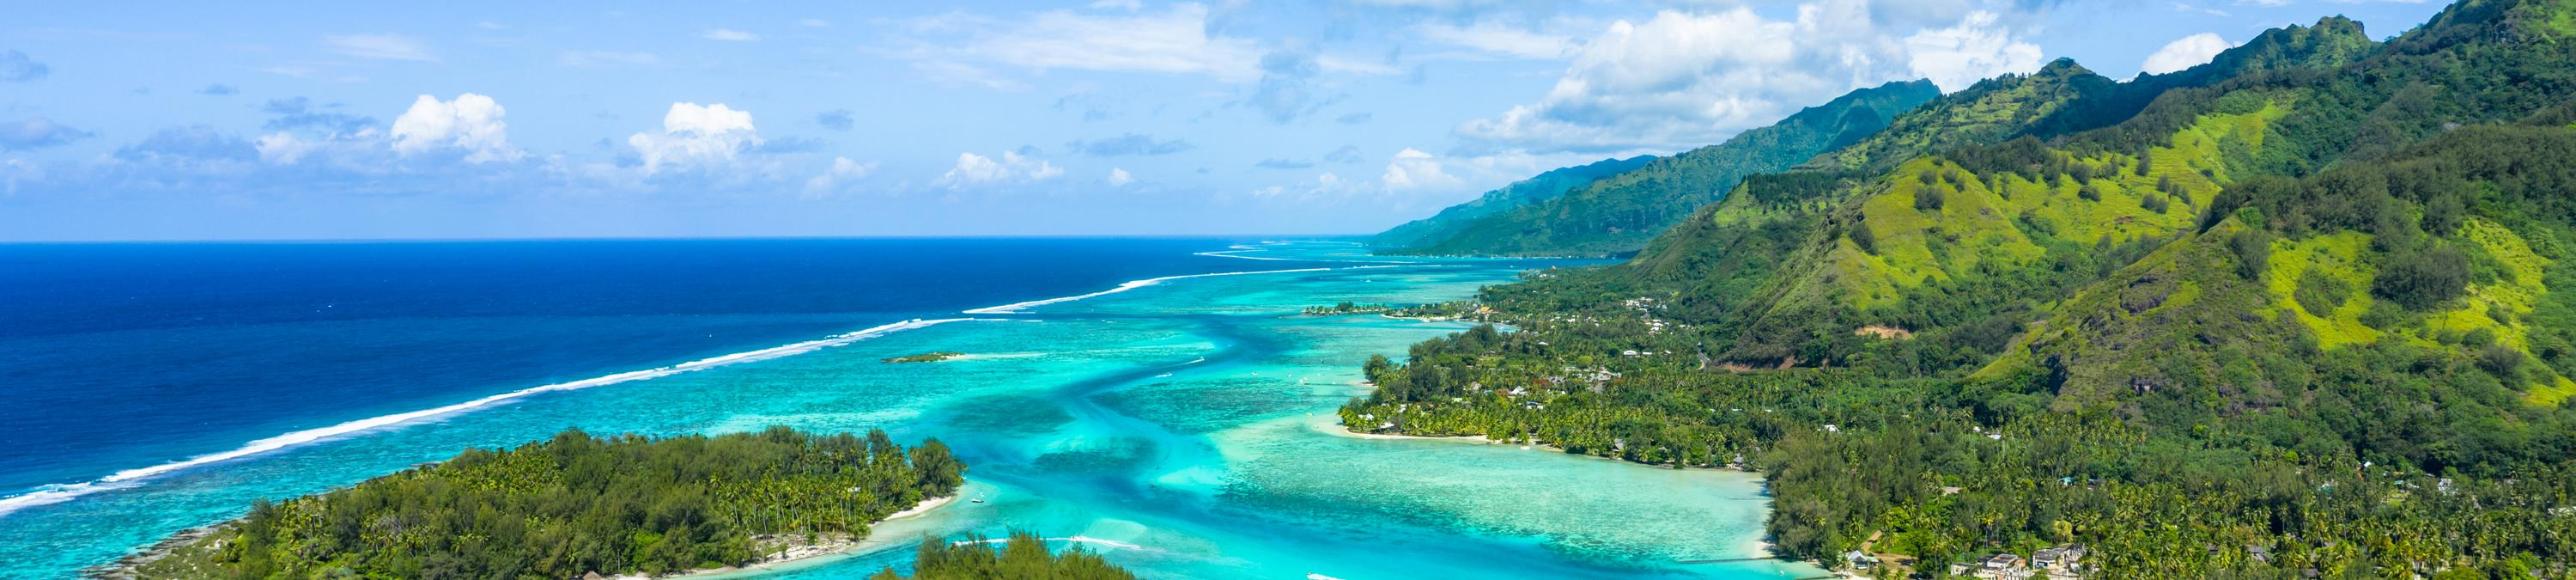 South Pacific Islands